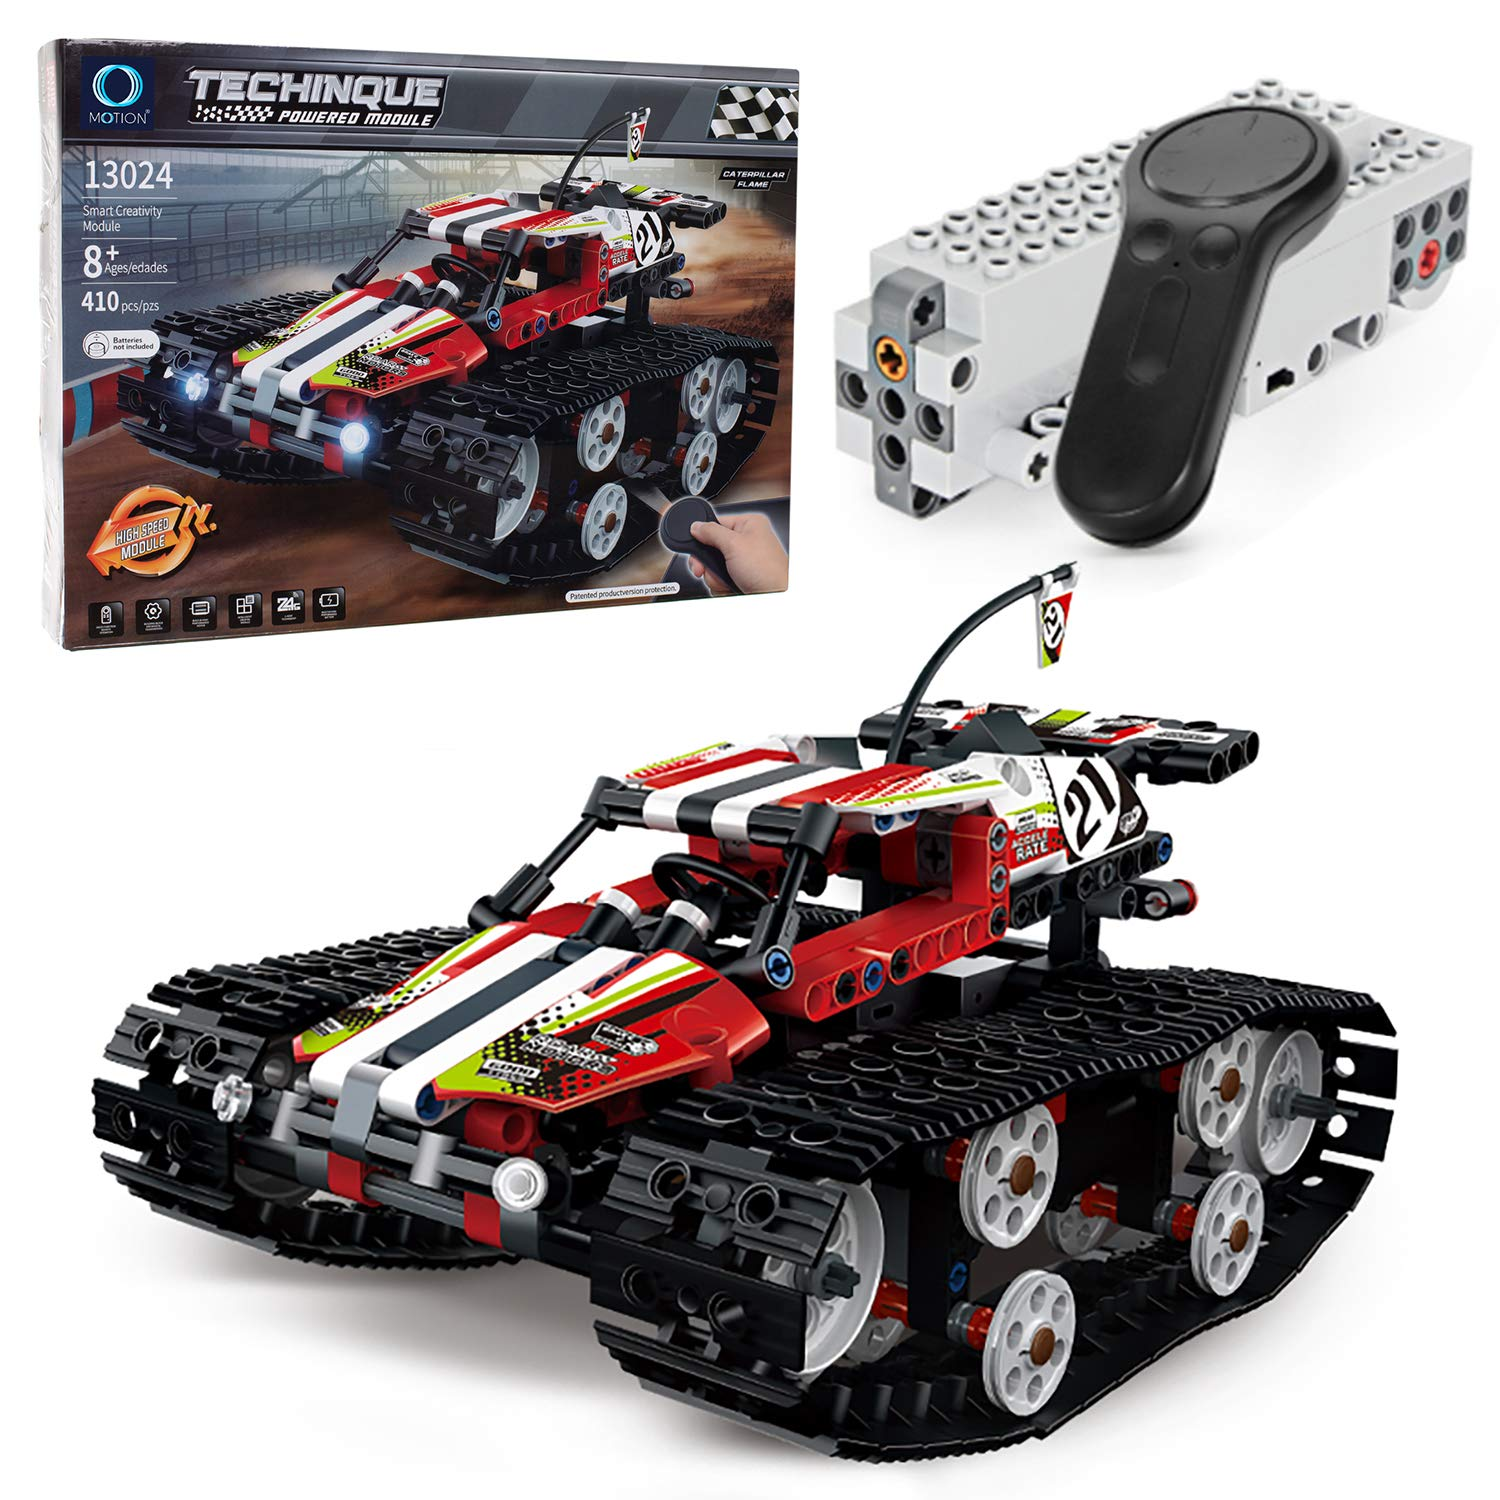 MOTION Kids Toys Educational Remote Control Building Bricks kit ( High Speed Car Red)